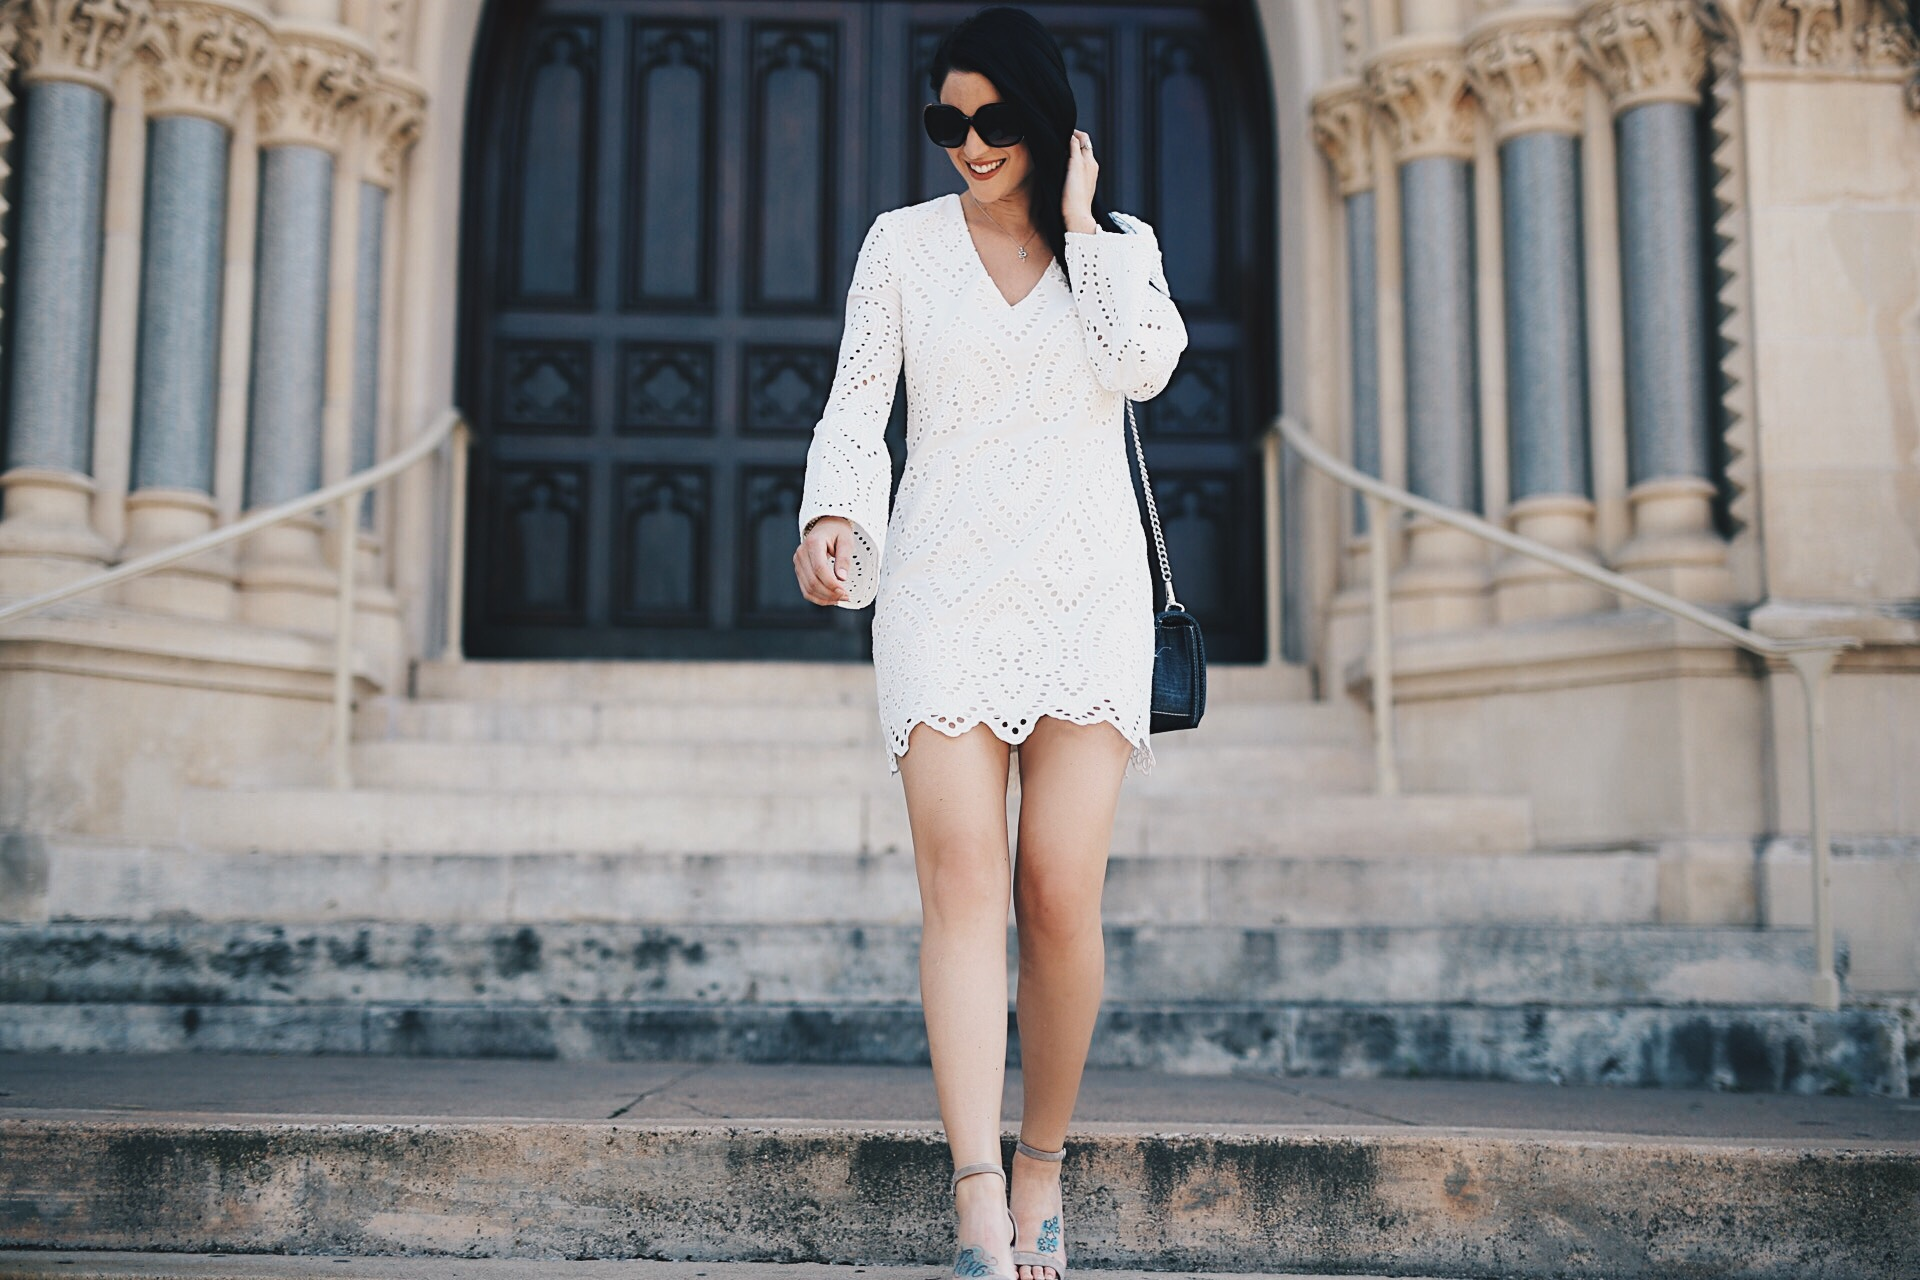 Cute Easter Dresses featured by top US fashion blog Dressed to Kill; Image of a woman wearing WAYF dress, Steve Madden shoes, Rebecca Minkoff handbag and Nordstrom sunglasses.